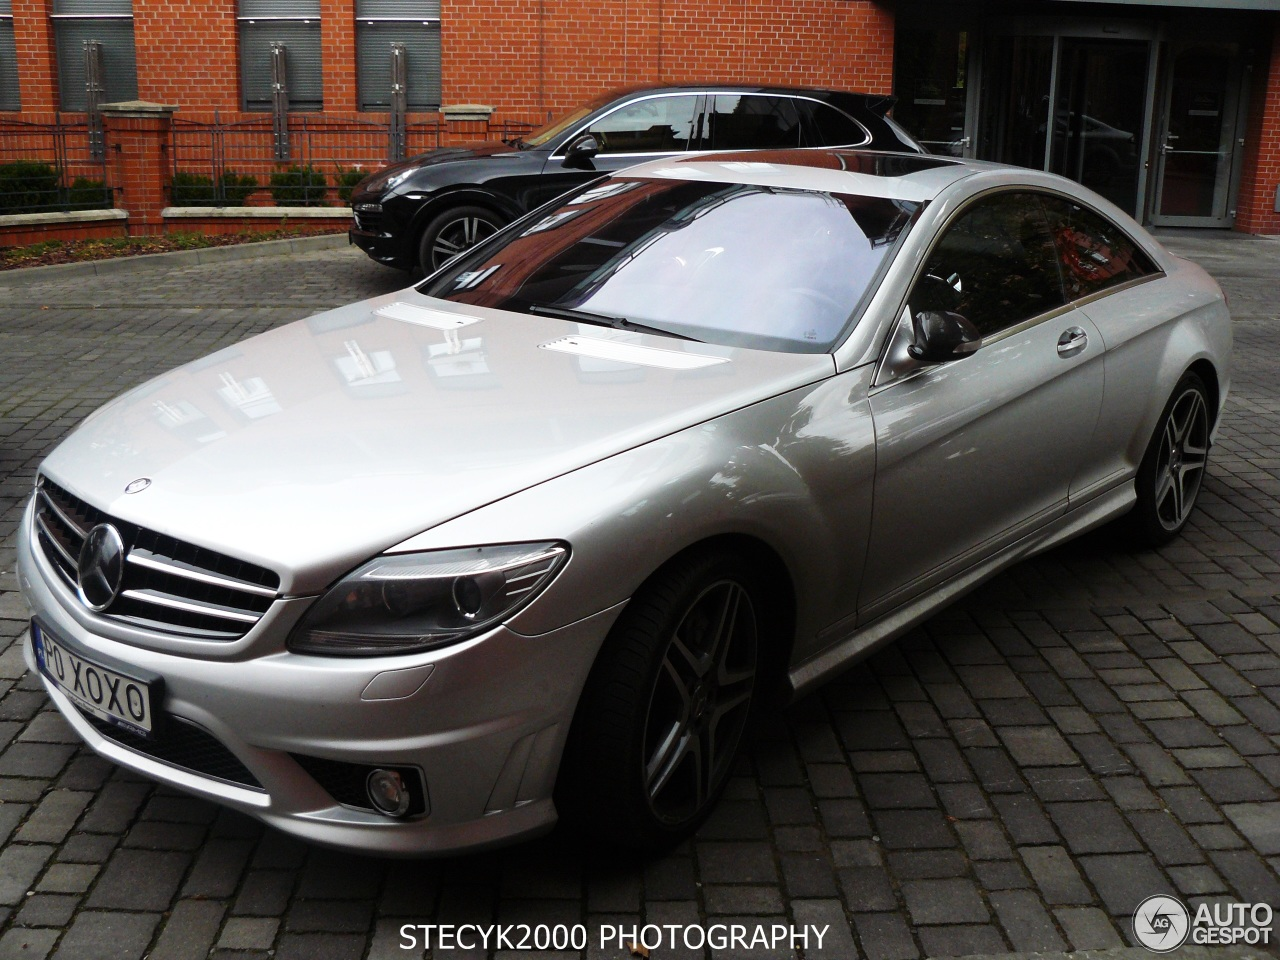 Mercedes benz cl 63 amg c216 29 august 2015 autogespot for Mercedes benz cl 63 amg price